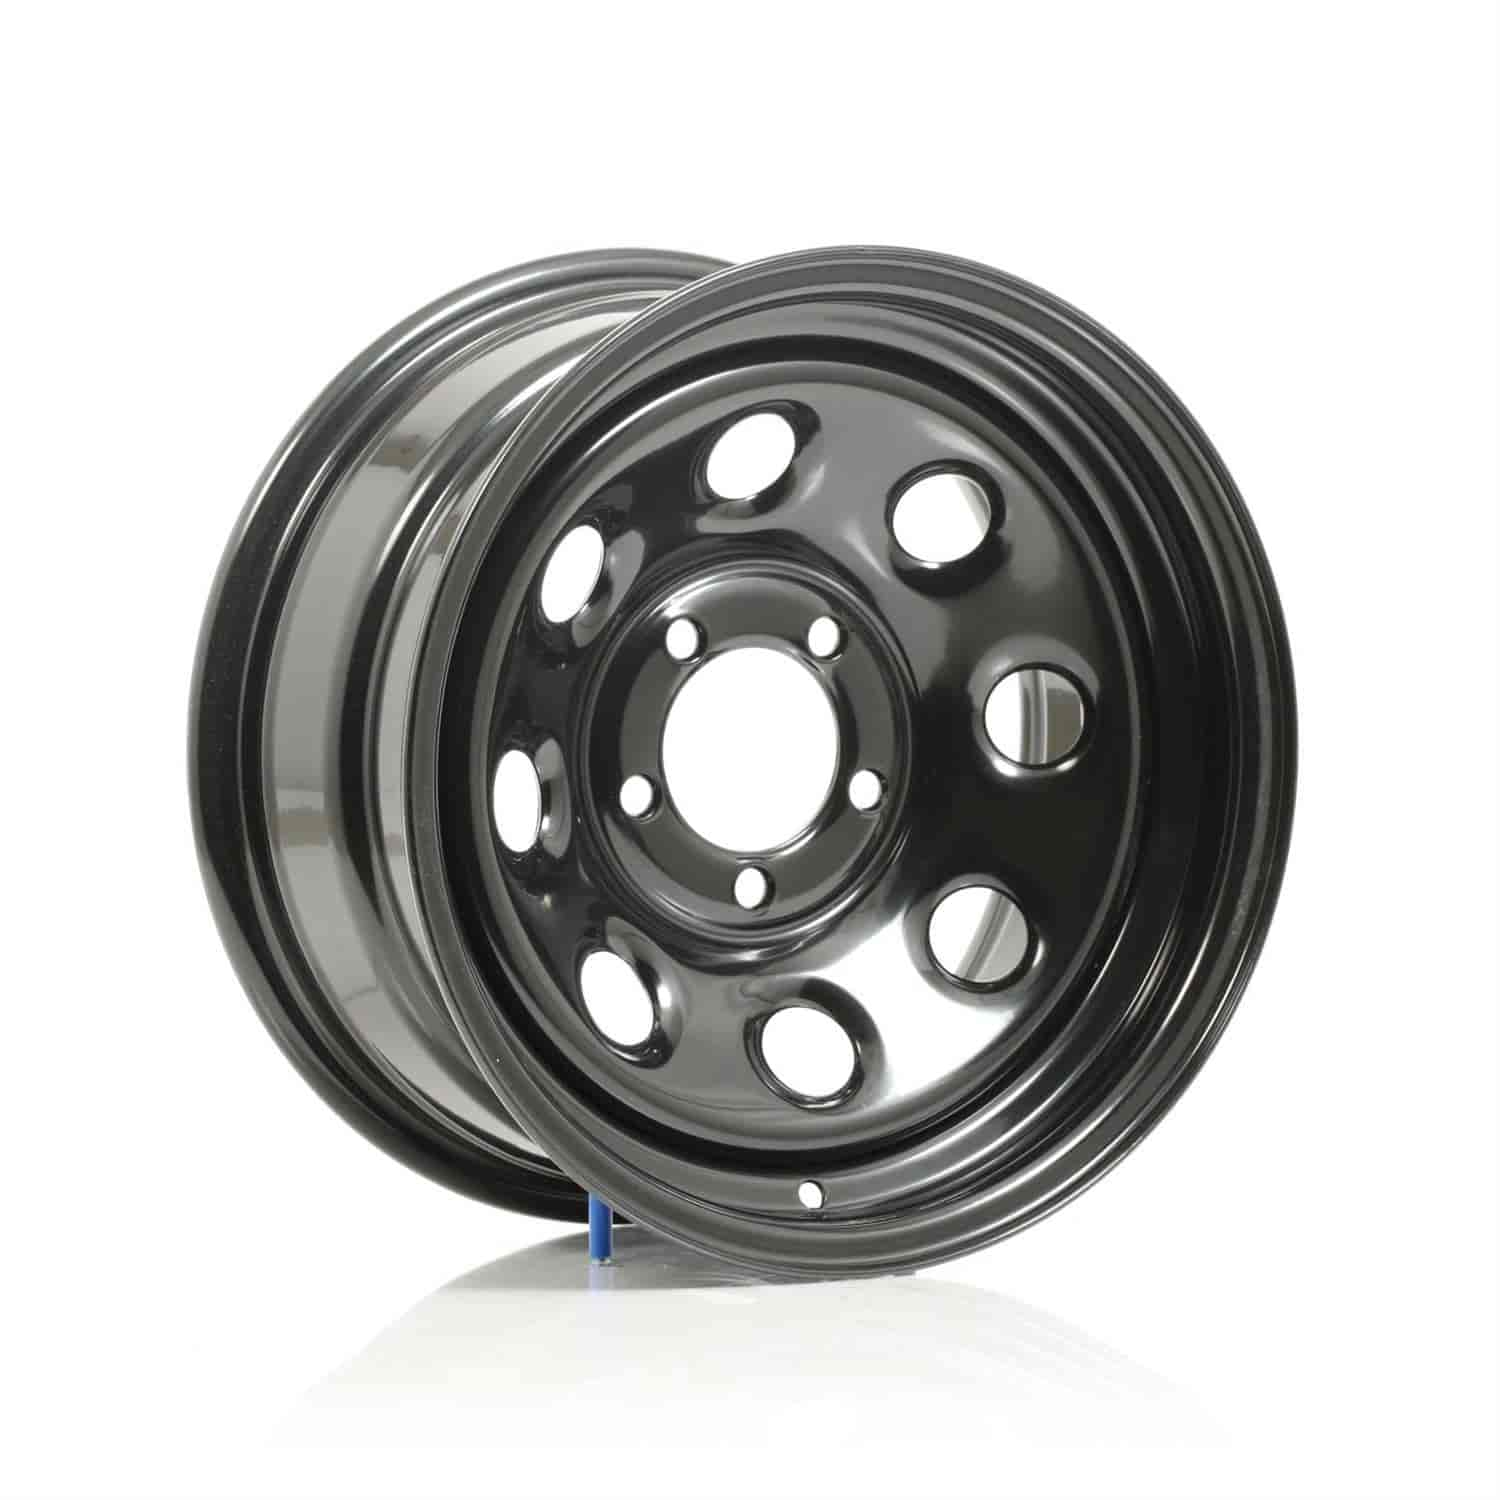 Cragar 3975455 - Cragar Black Soft 8 Wheels